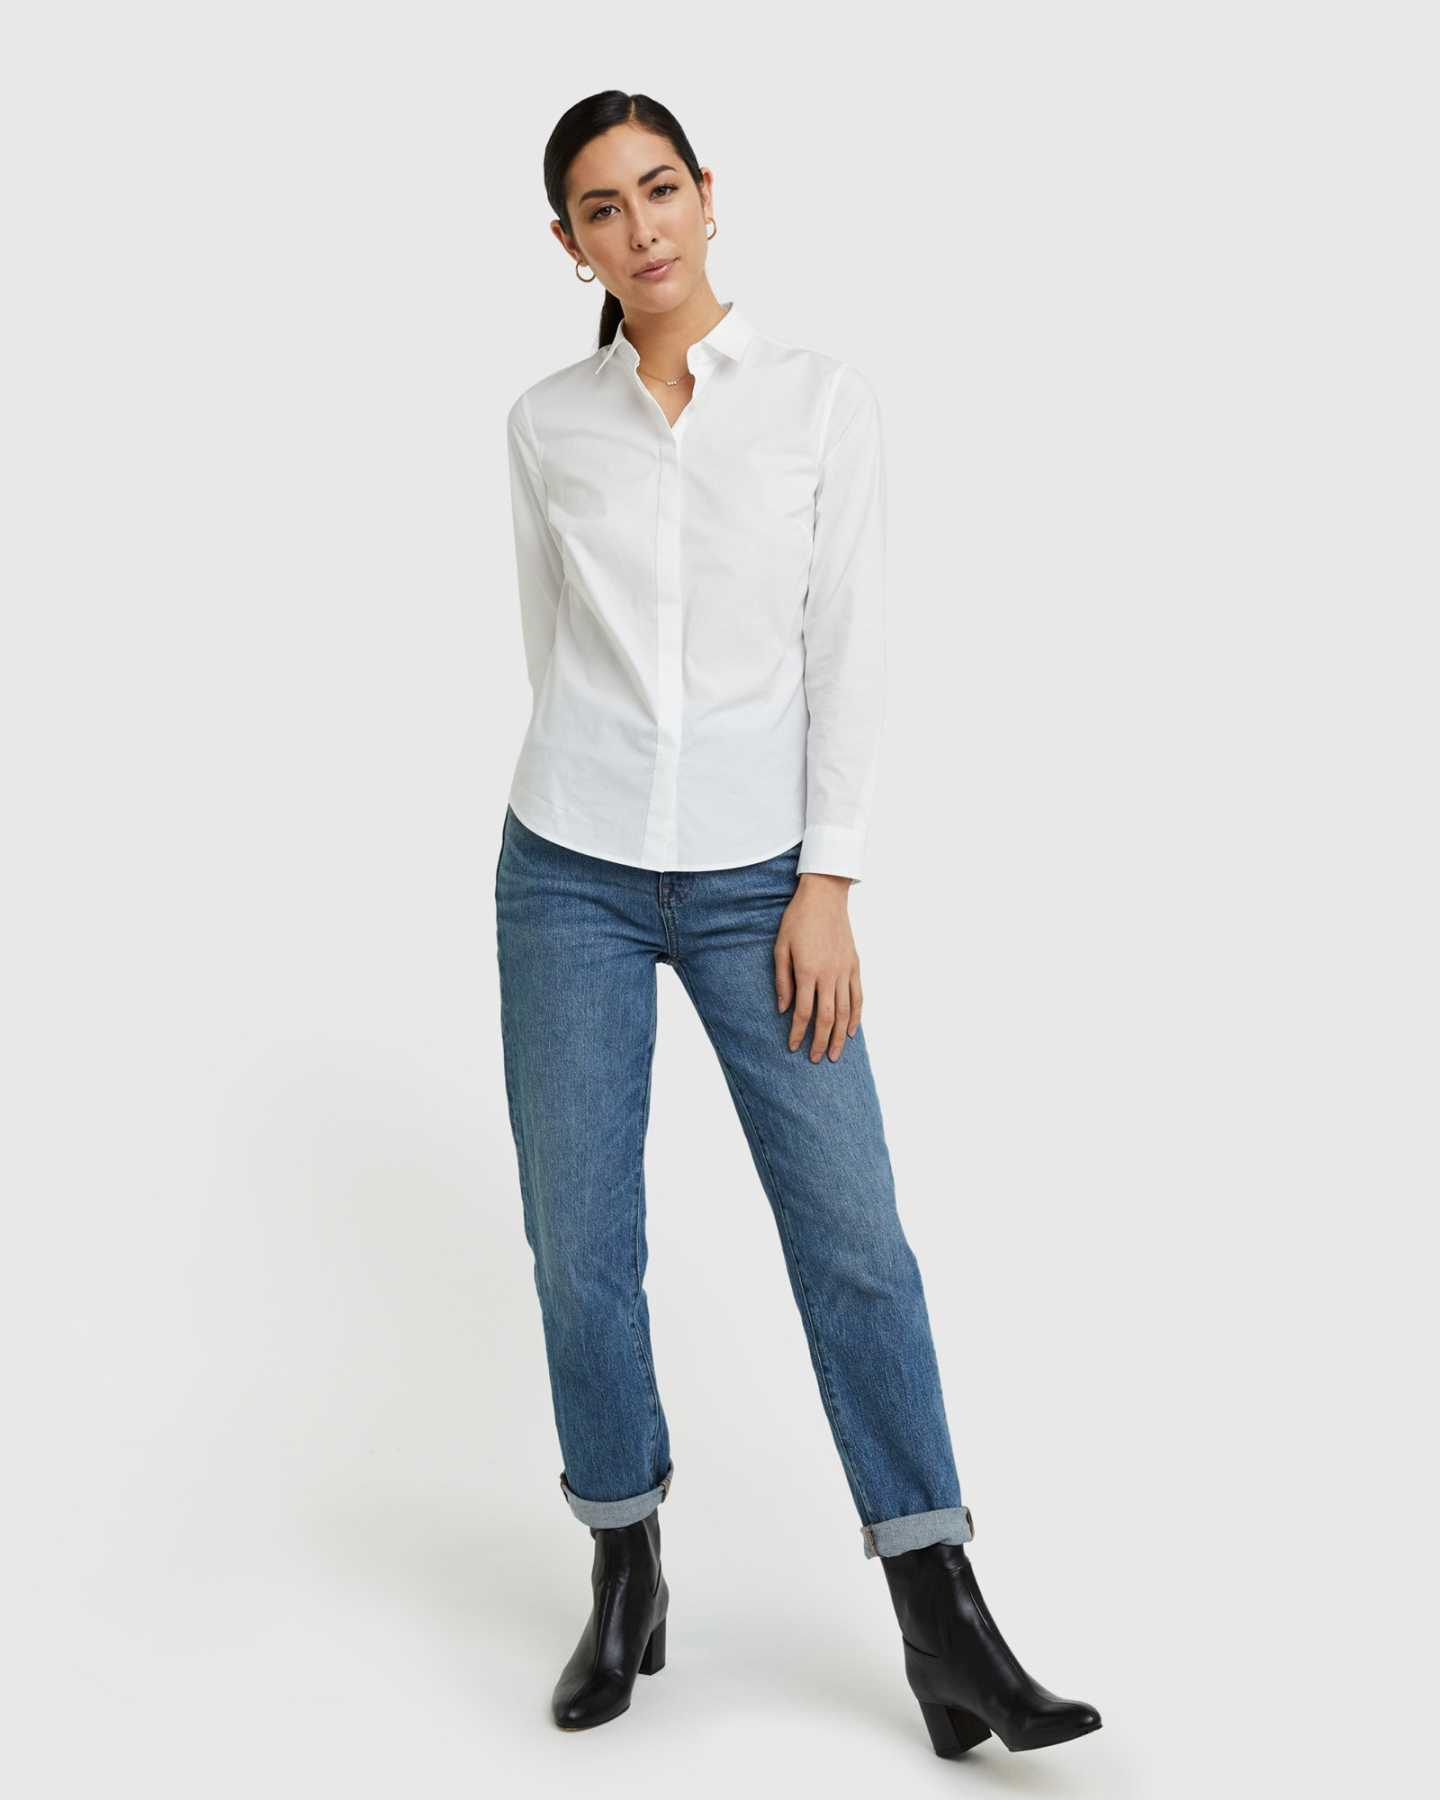 Organic Cotton Stretch Poplin Shirt - 13587171803247